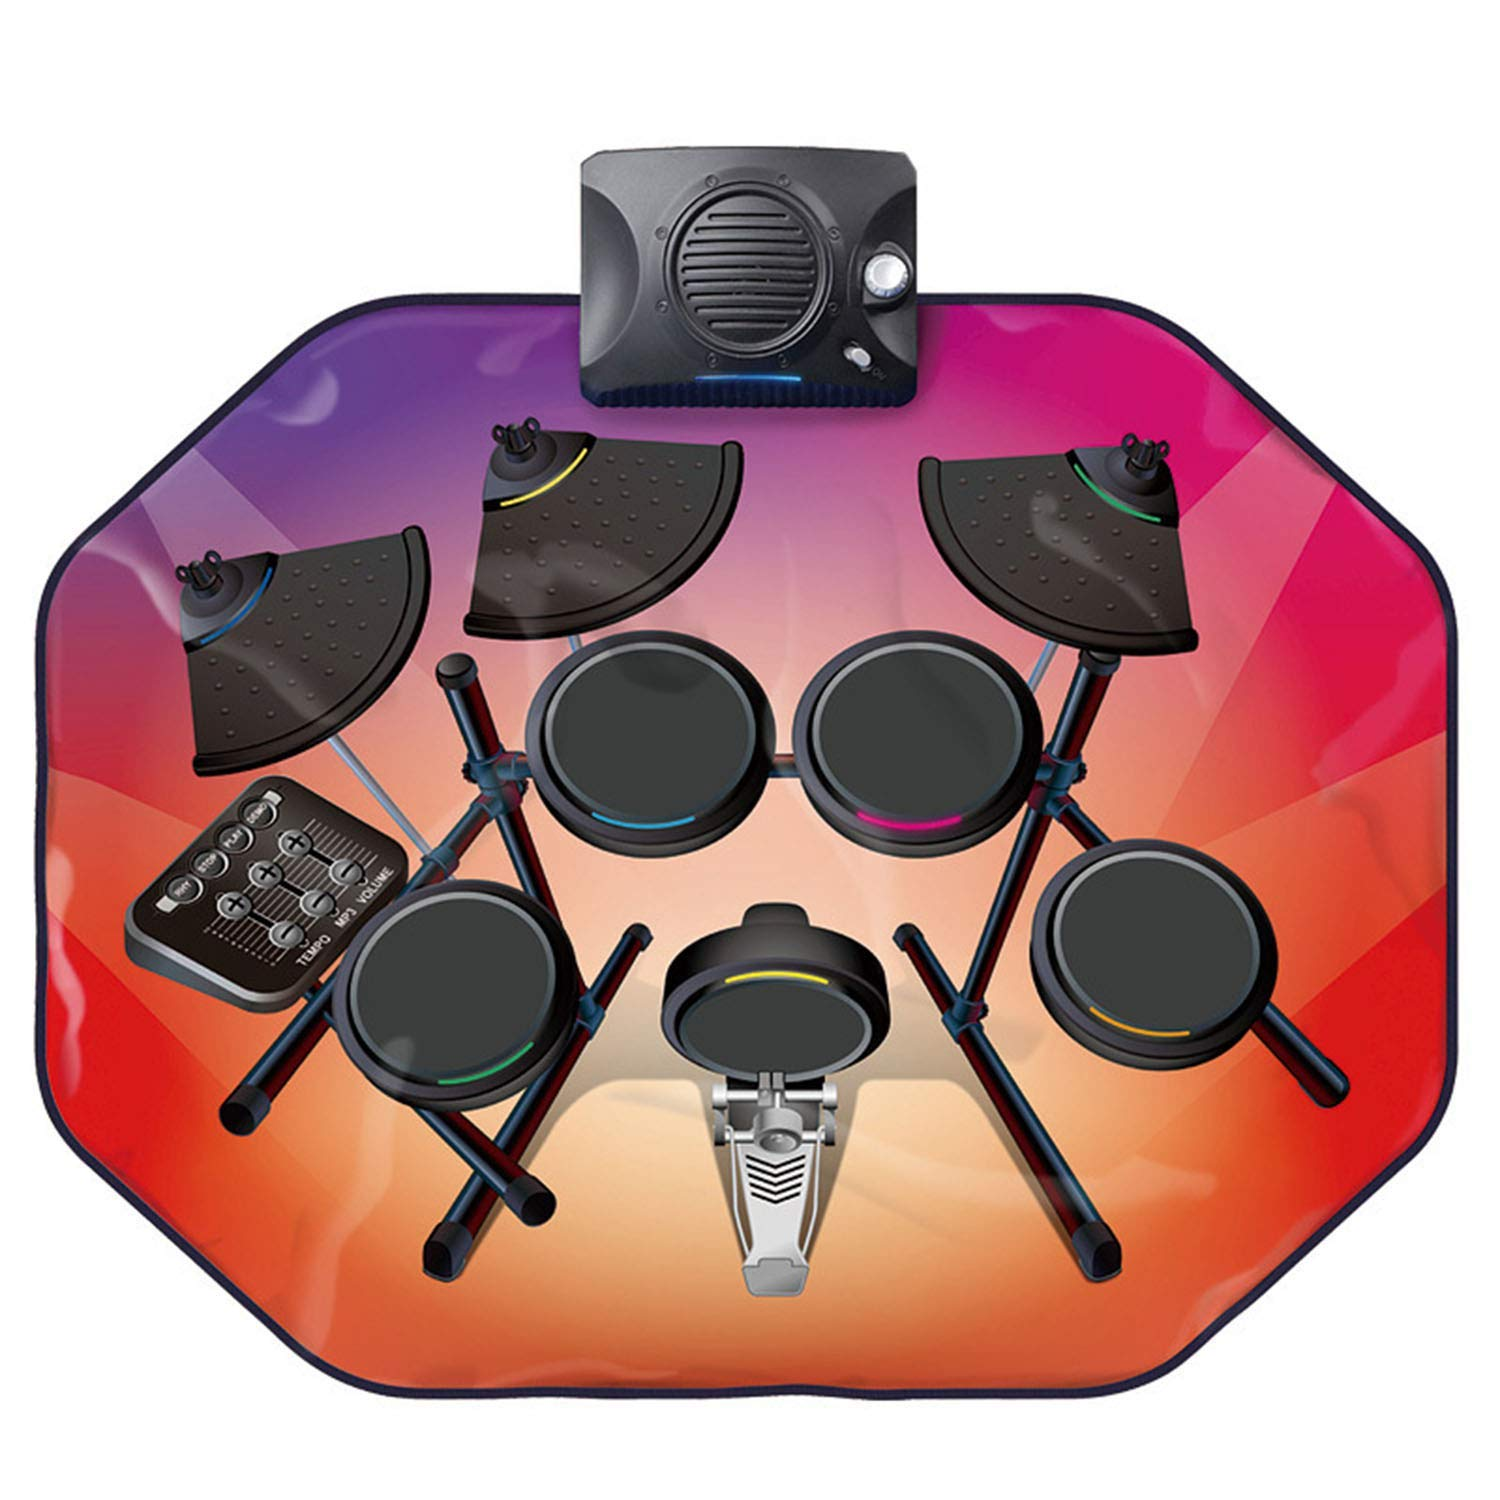 Drum Music Blanket, Jazz Drum Game Pad, Carpet Dance Mat, with Built in Music Tracks, 5 Music, Recording Function, Can Connect to Mobile Phone by ankt777 (Image #2)